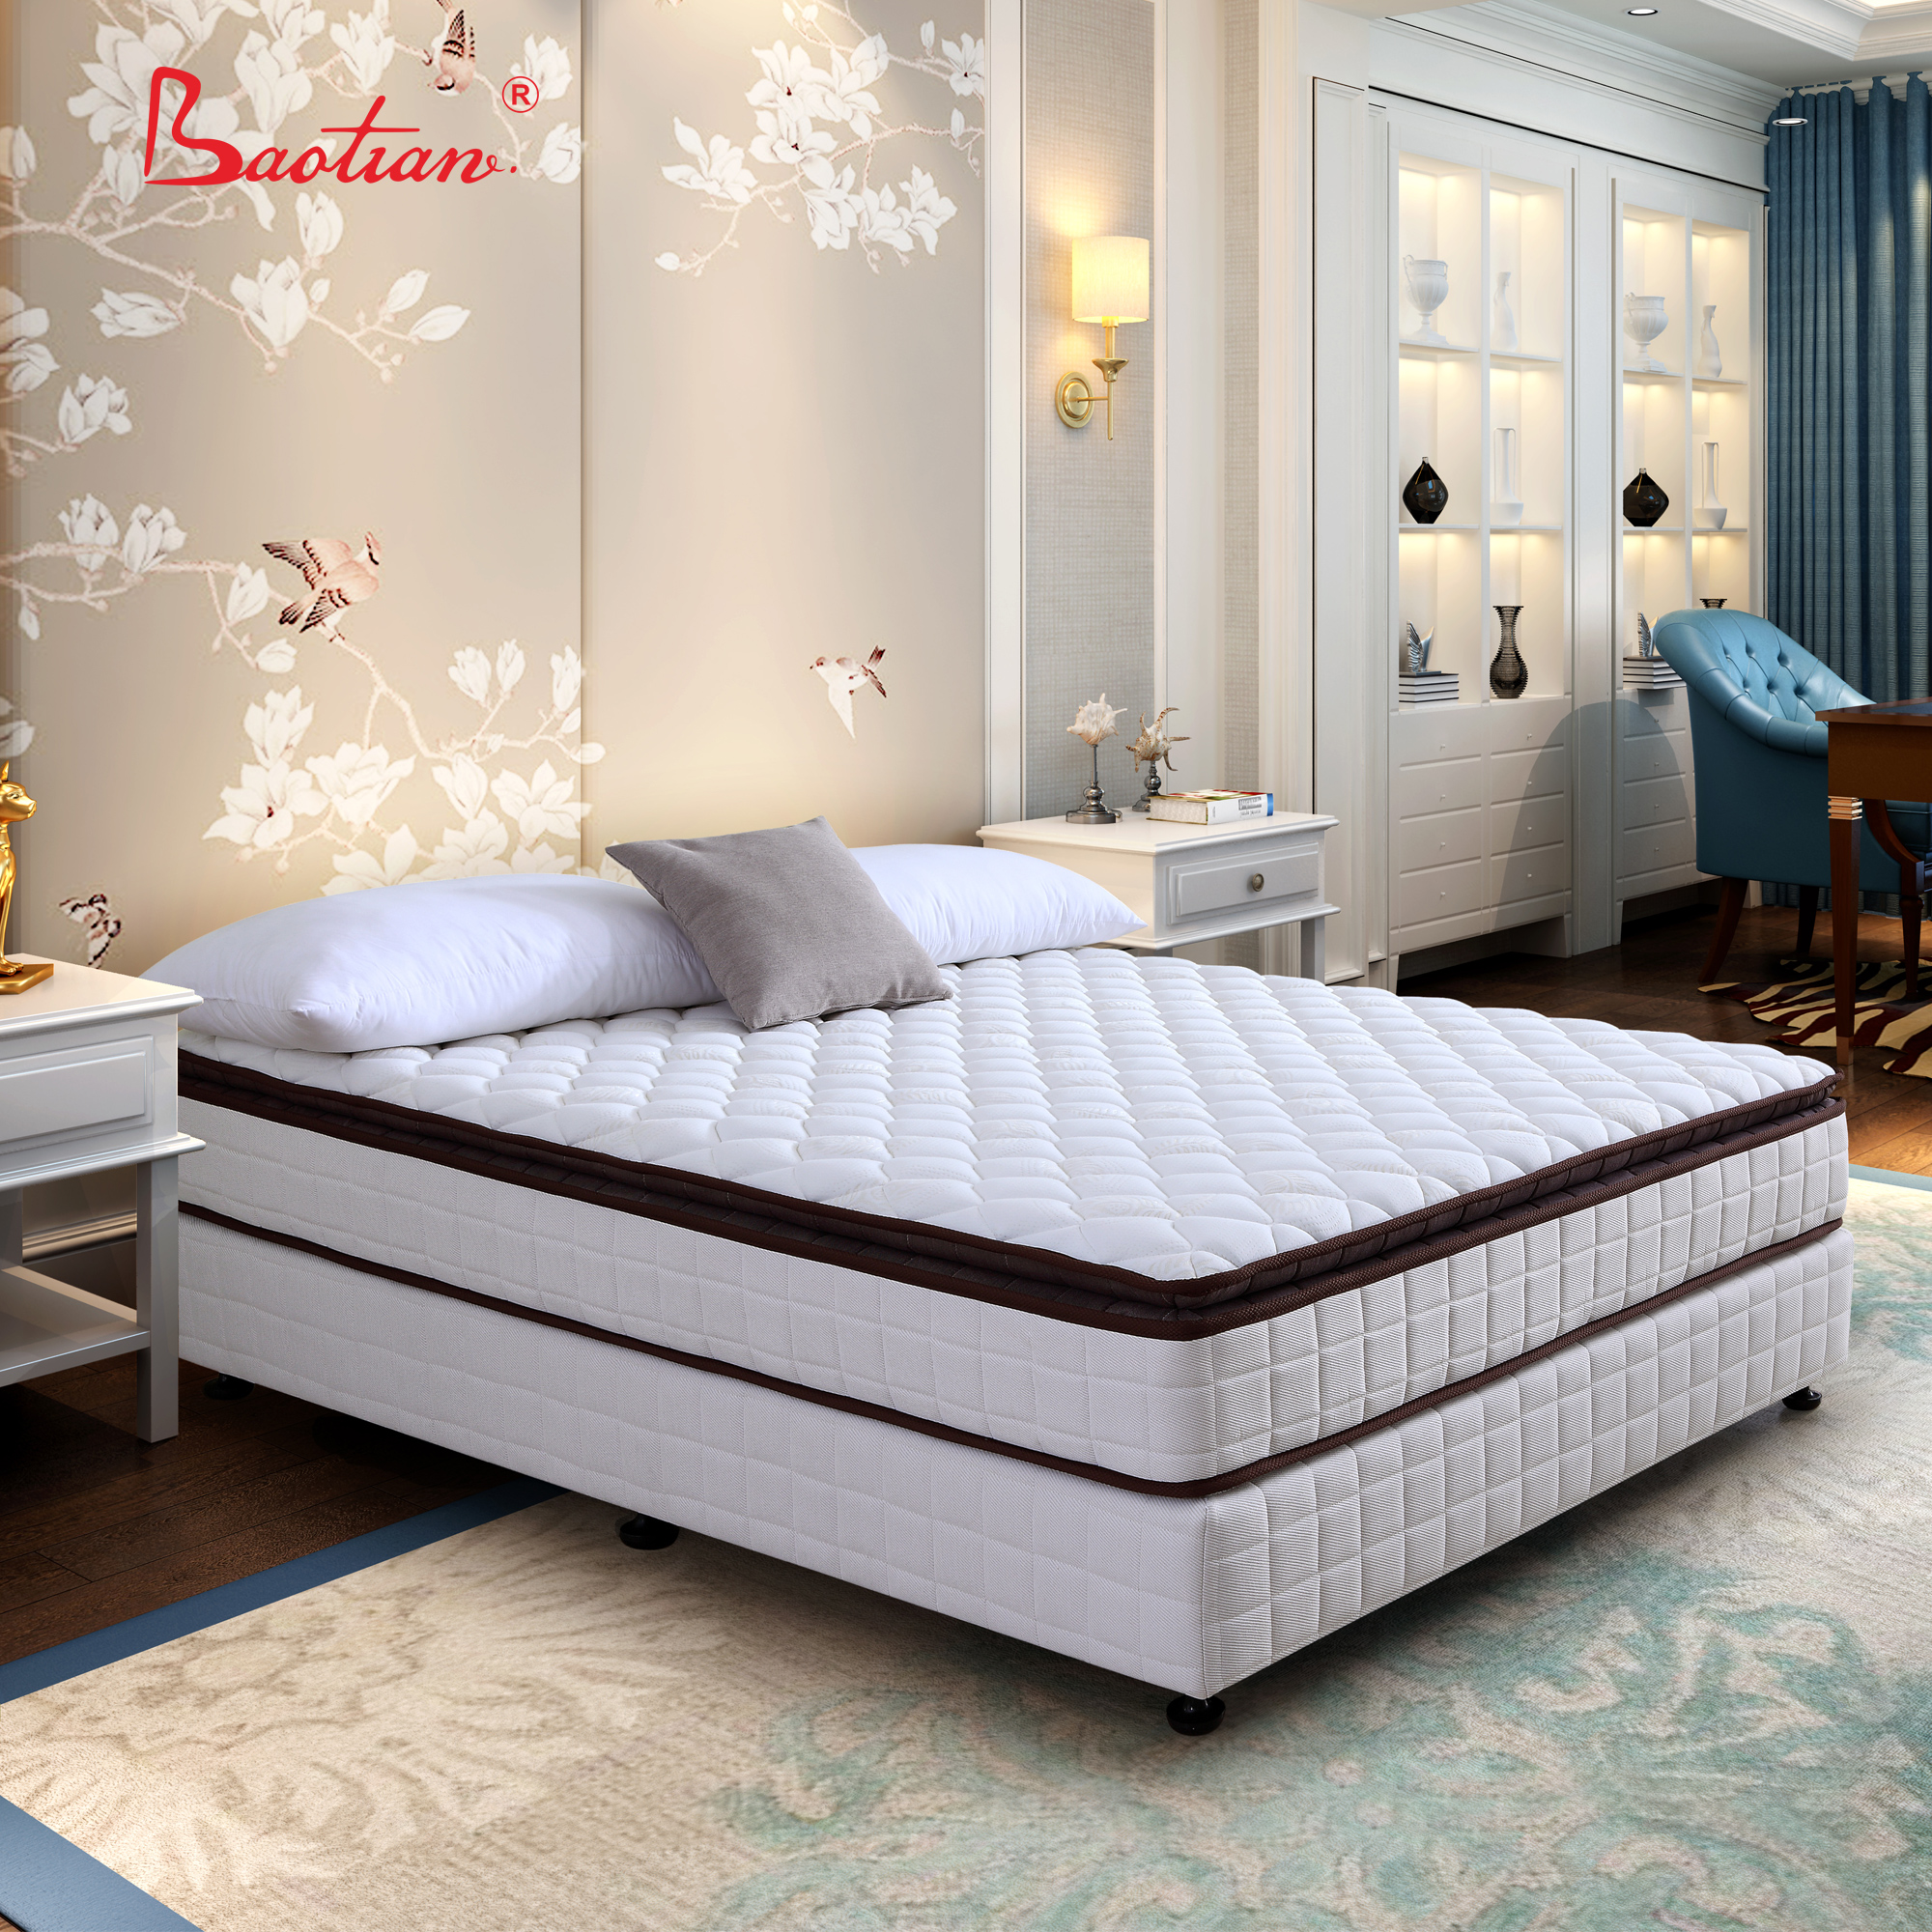 5 Star Hotel Bed Mattress With Memory Foam Pillow Top Or Living Room Sleepwell Pocket Spring Mattress Bedroom Furniture Factory Buy Compress Spring Mattress Bed Mattress Sleepwell Mattress Product On Alibaba Com